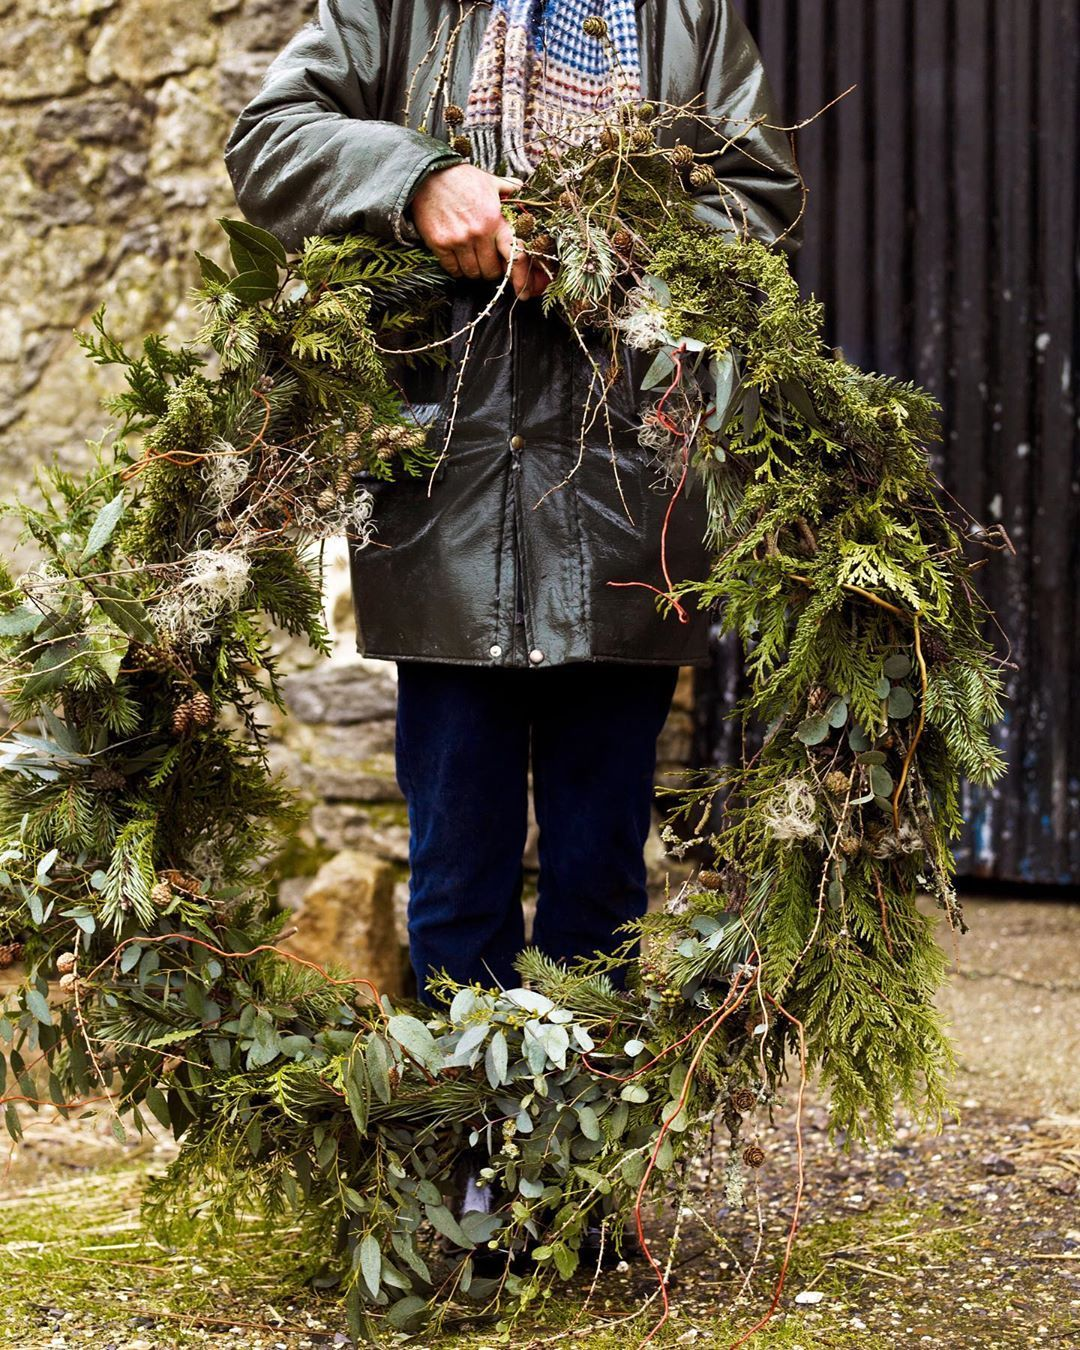 Here S A Decoration To Make An Impact An Oversized Wreath For Christmas With Materials Foraged From Your Garden You Nee Kerst